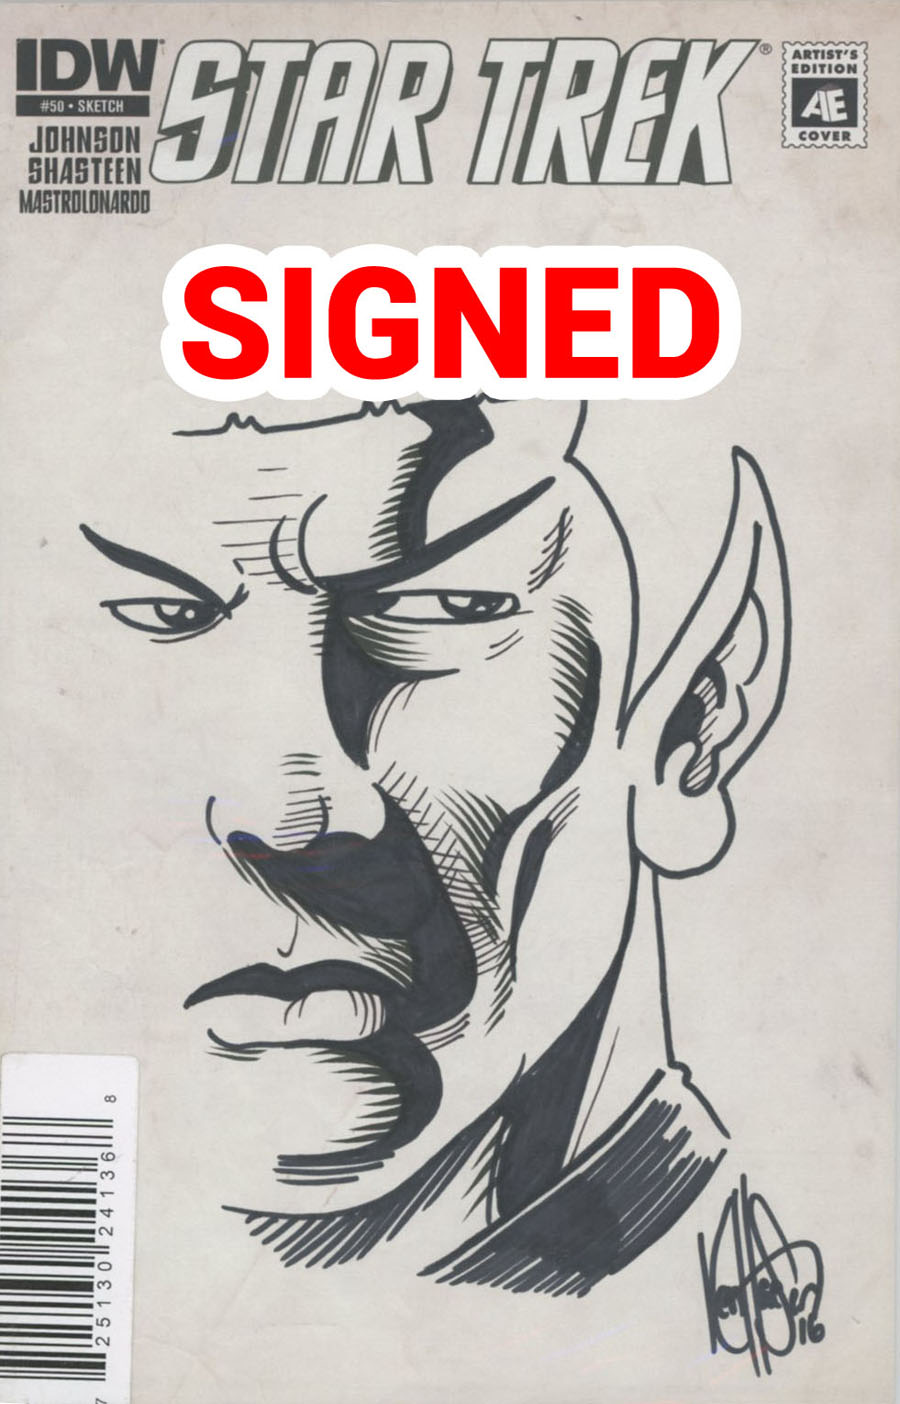 Star Trek (IDW) #50 Cover E DF Artists Edition Signed & Remarked By Ken Haeser Sketch Variant Cover